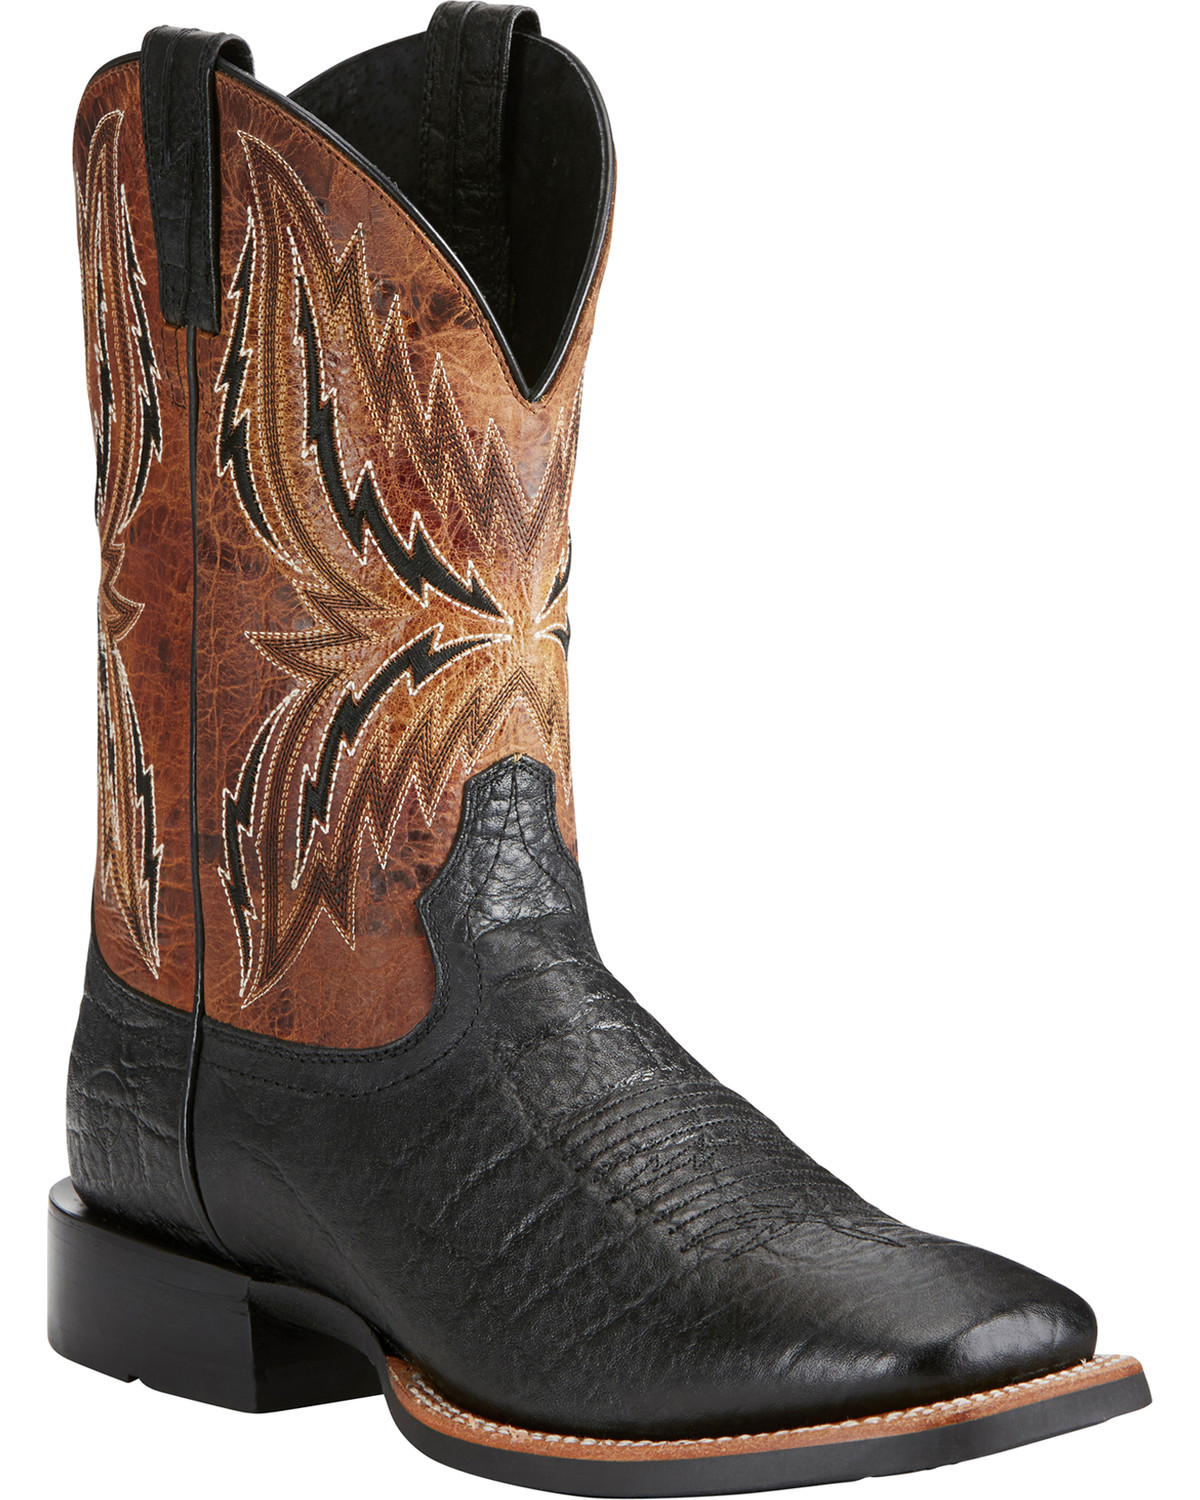 good quality clearance sale competitive price Ariat Men's Arena Rebound Elephant Print Cowboy Boots - Square Toe